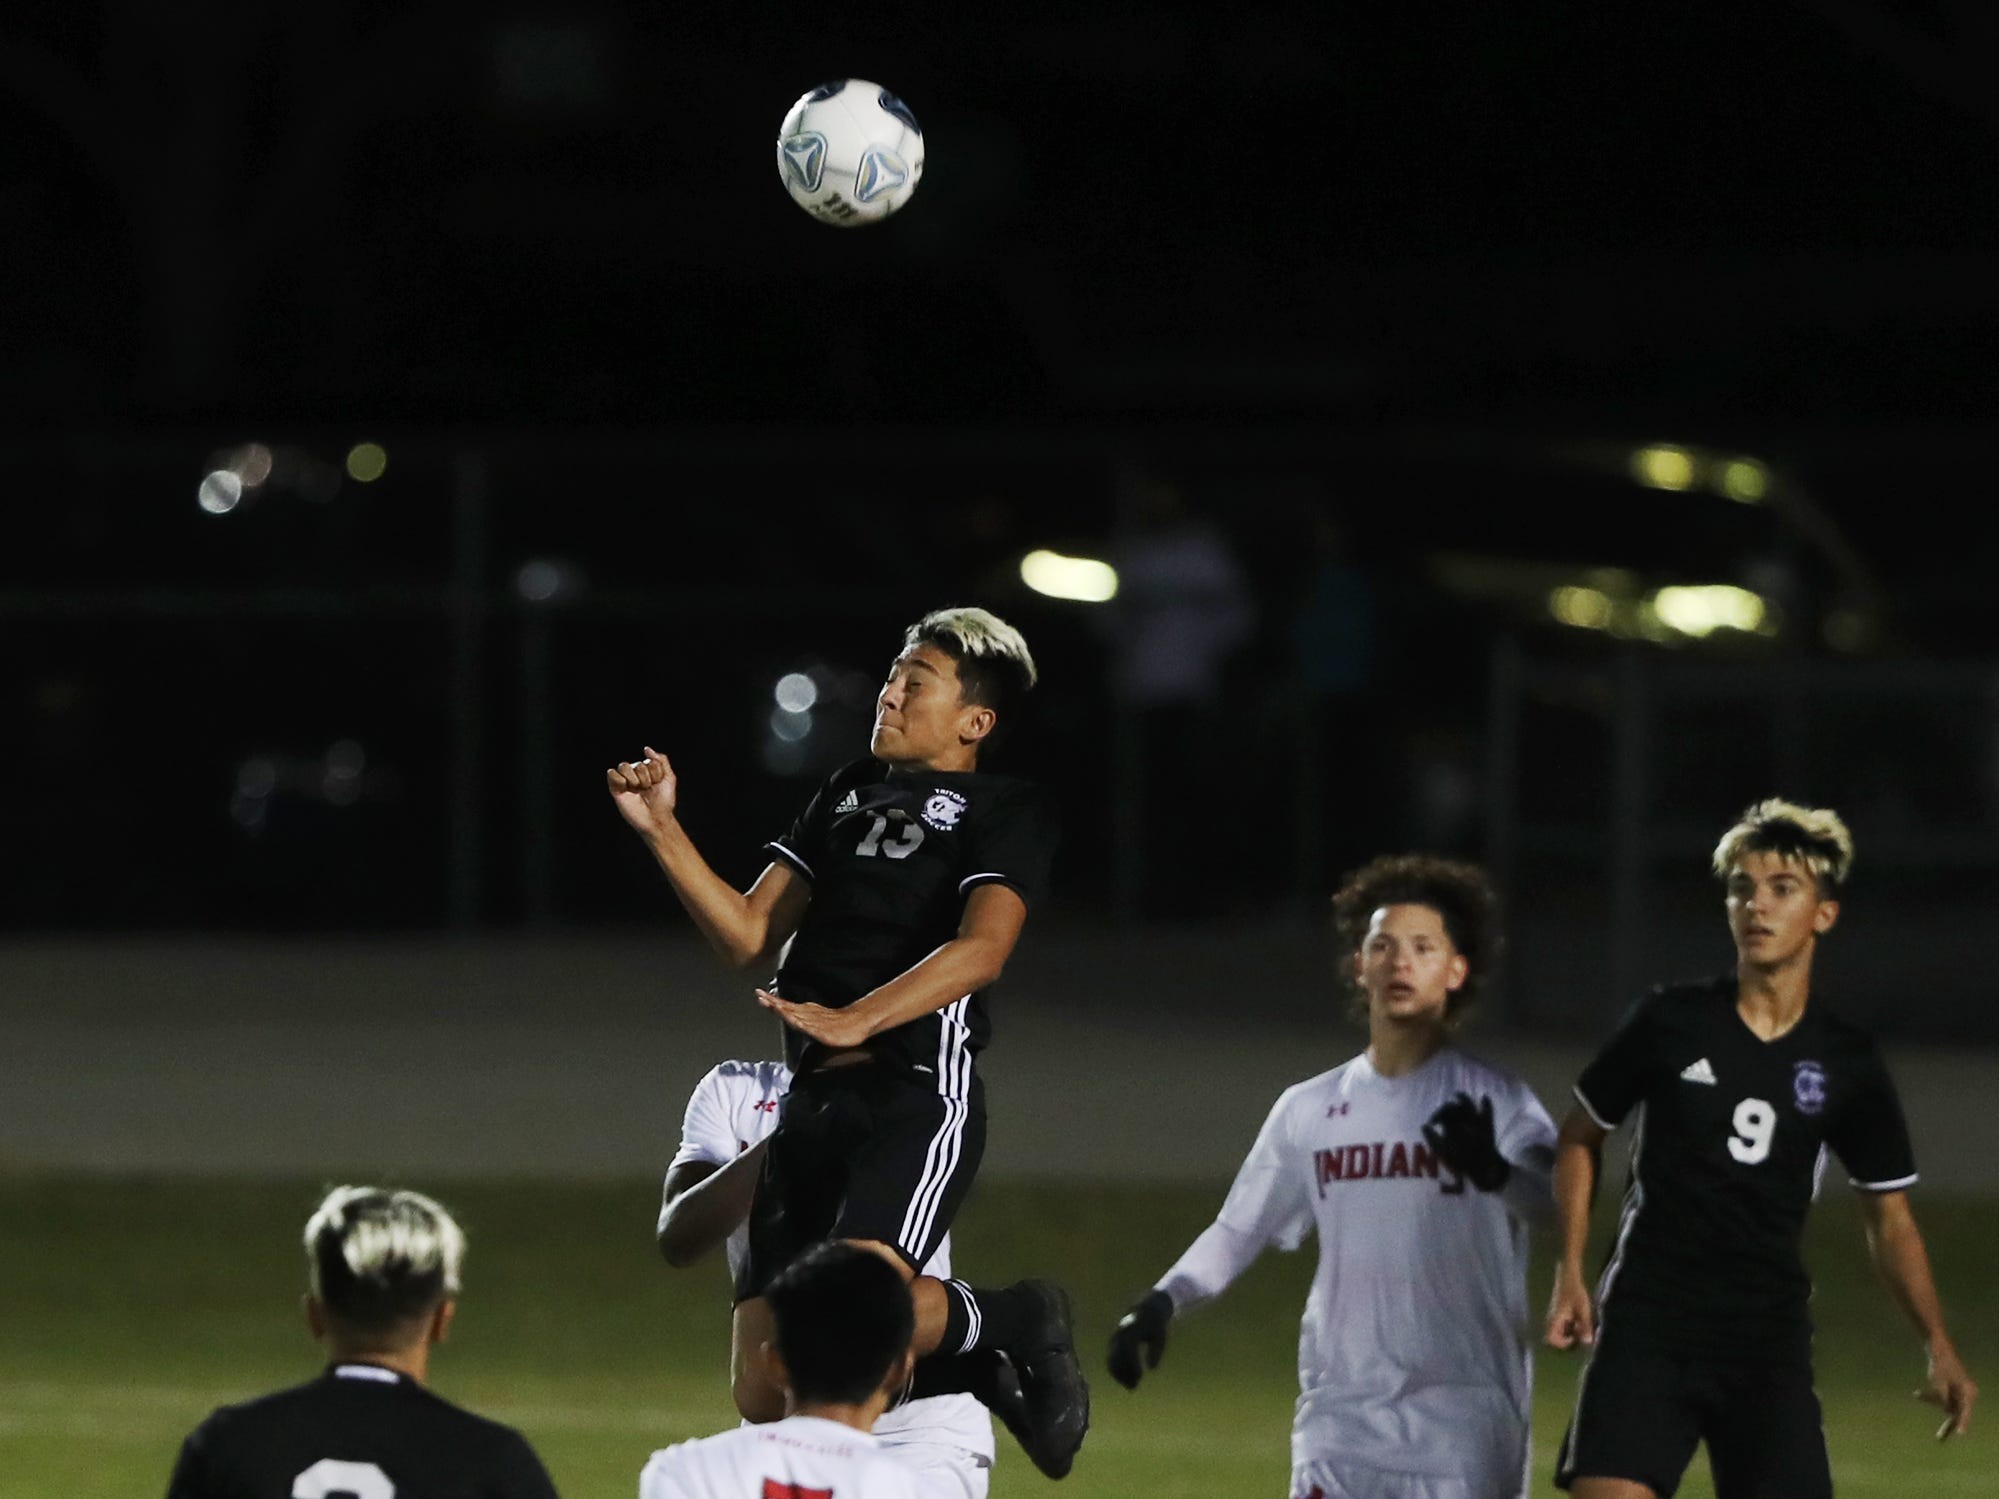 Mariner High School's Esteban Orjuela fields a pass against Immokalee on Wednesday in the Class 3A regional quarterfinal. Mariner beat Immokalee 2-0.